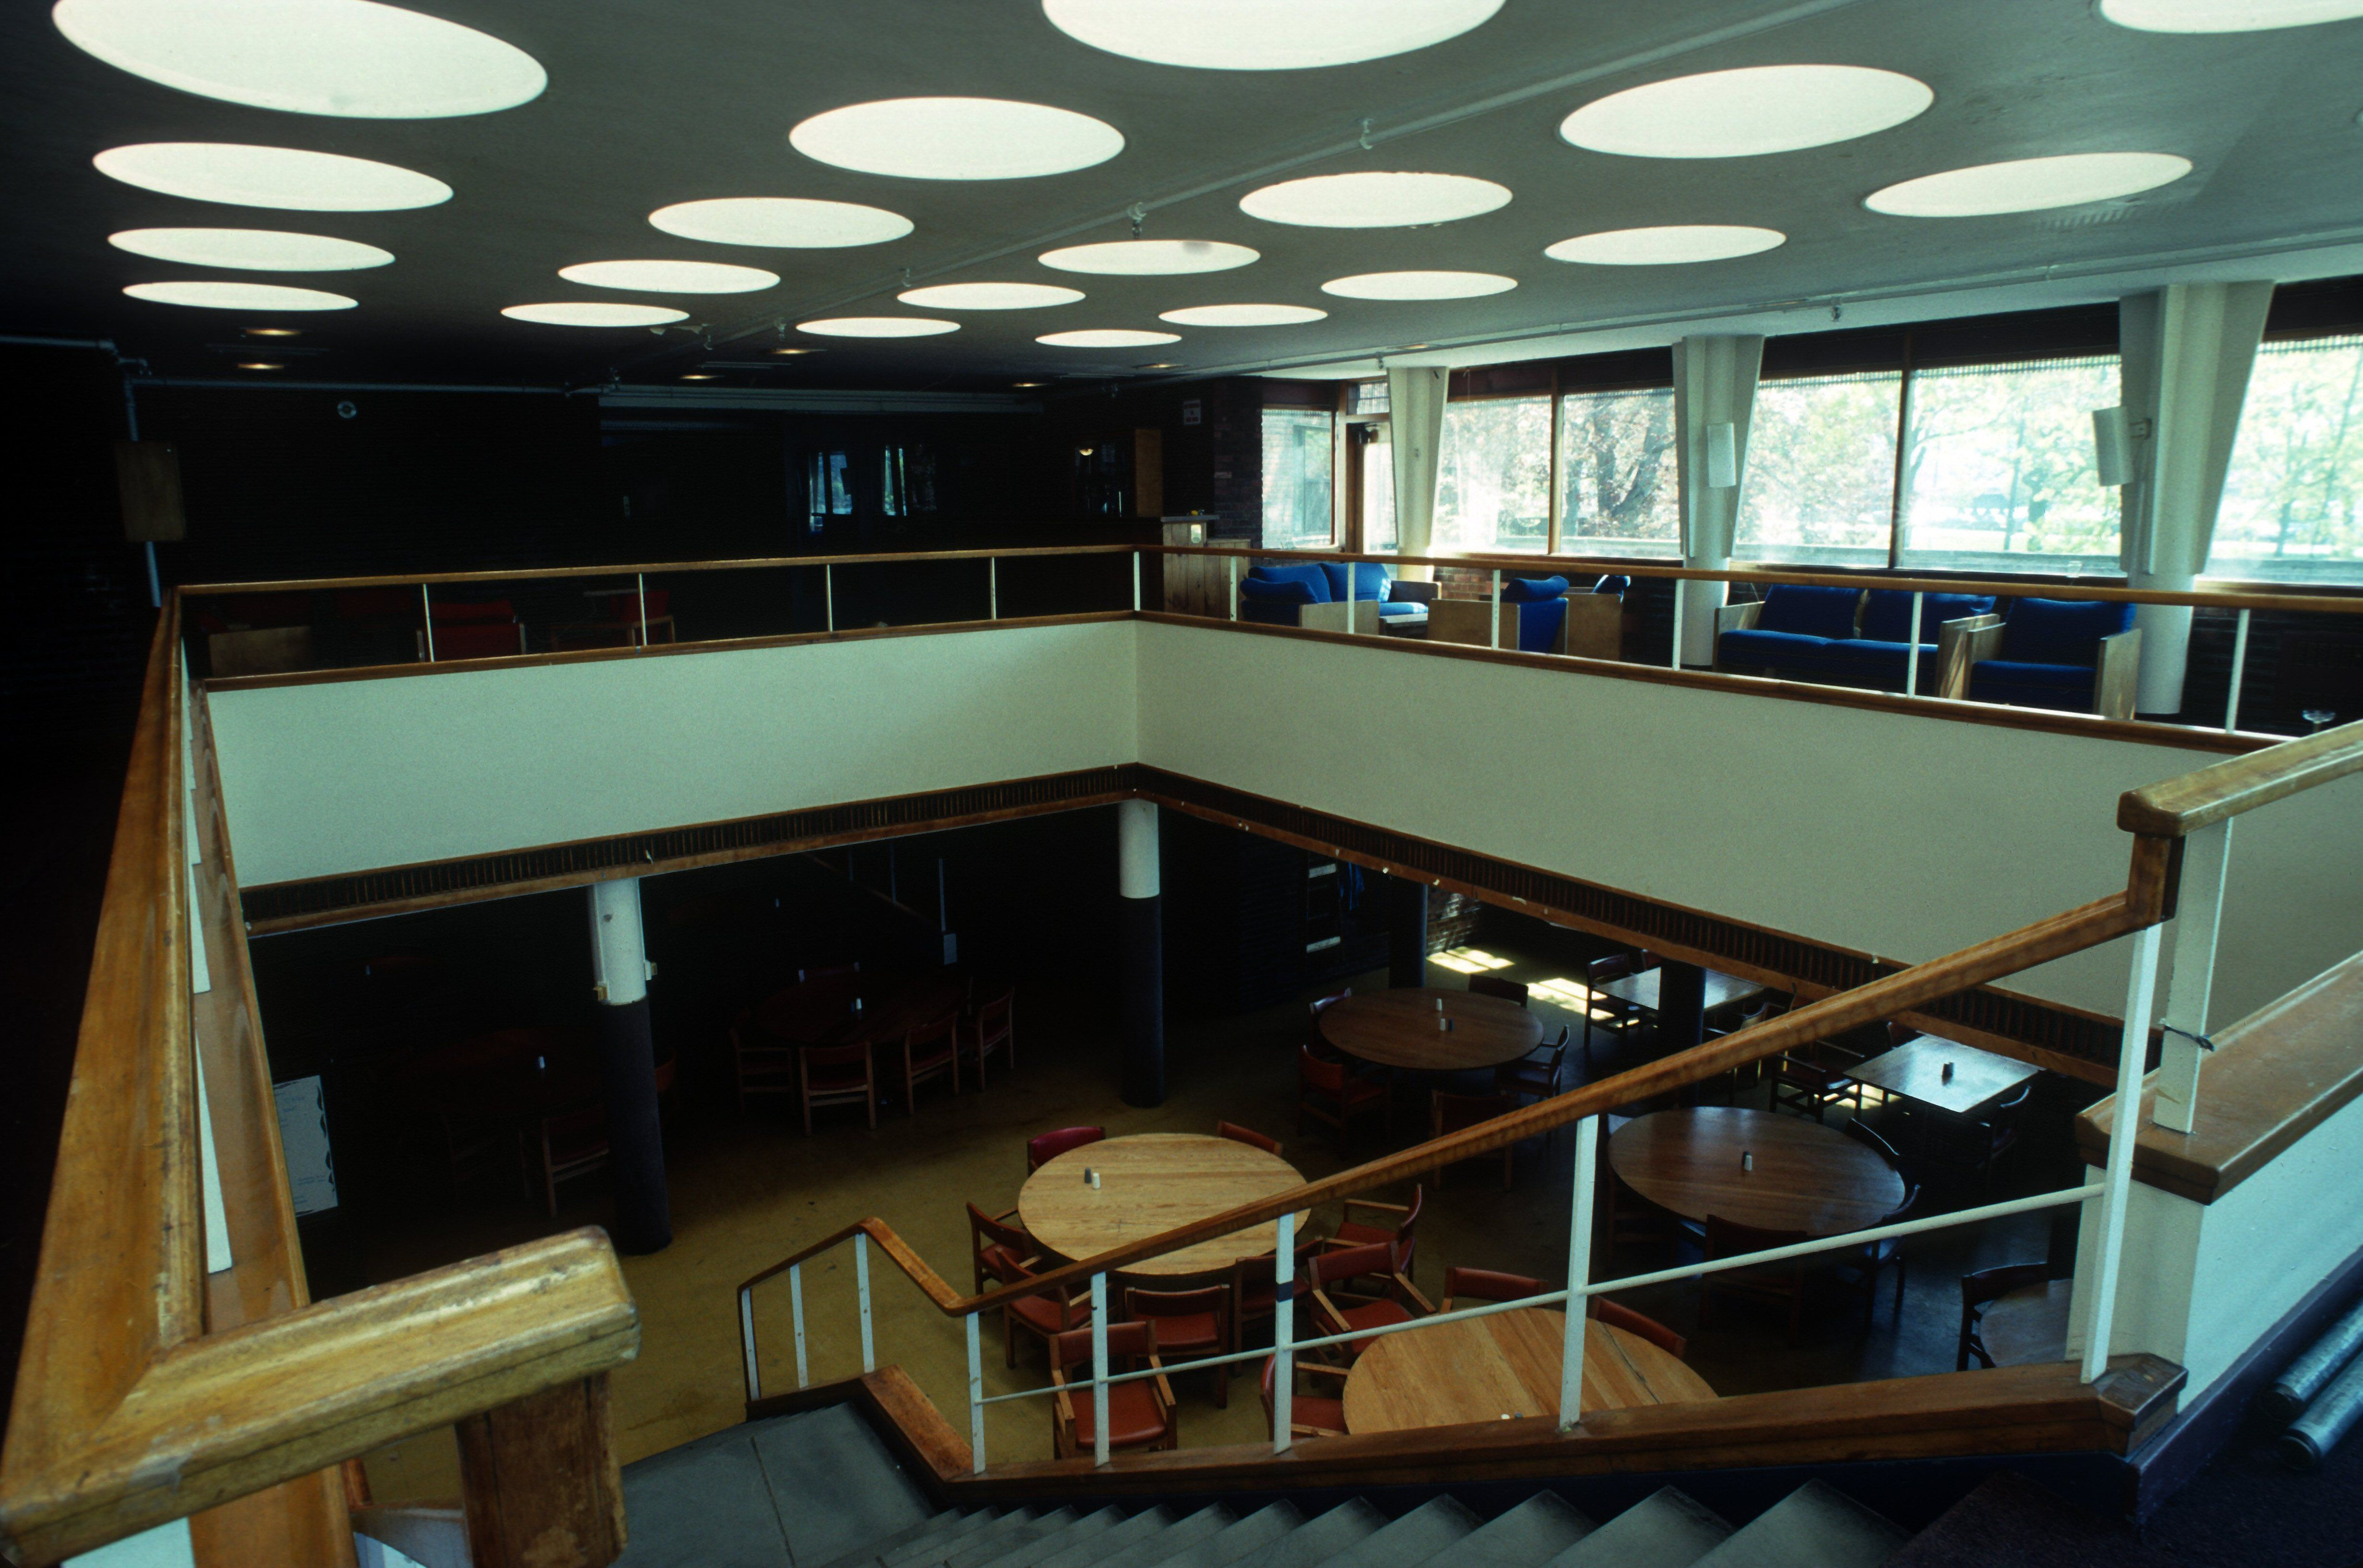 modern interior, two levels, open stairway, second floor opens to first, round lights on the ceiling